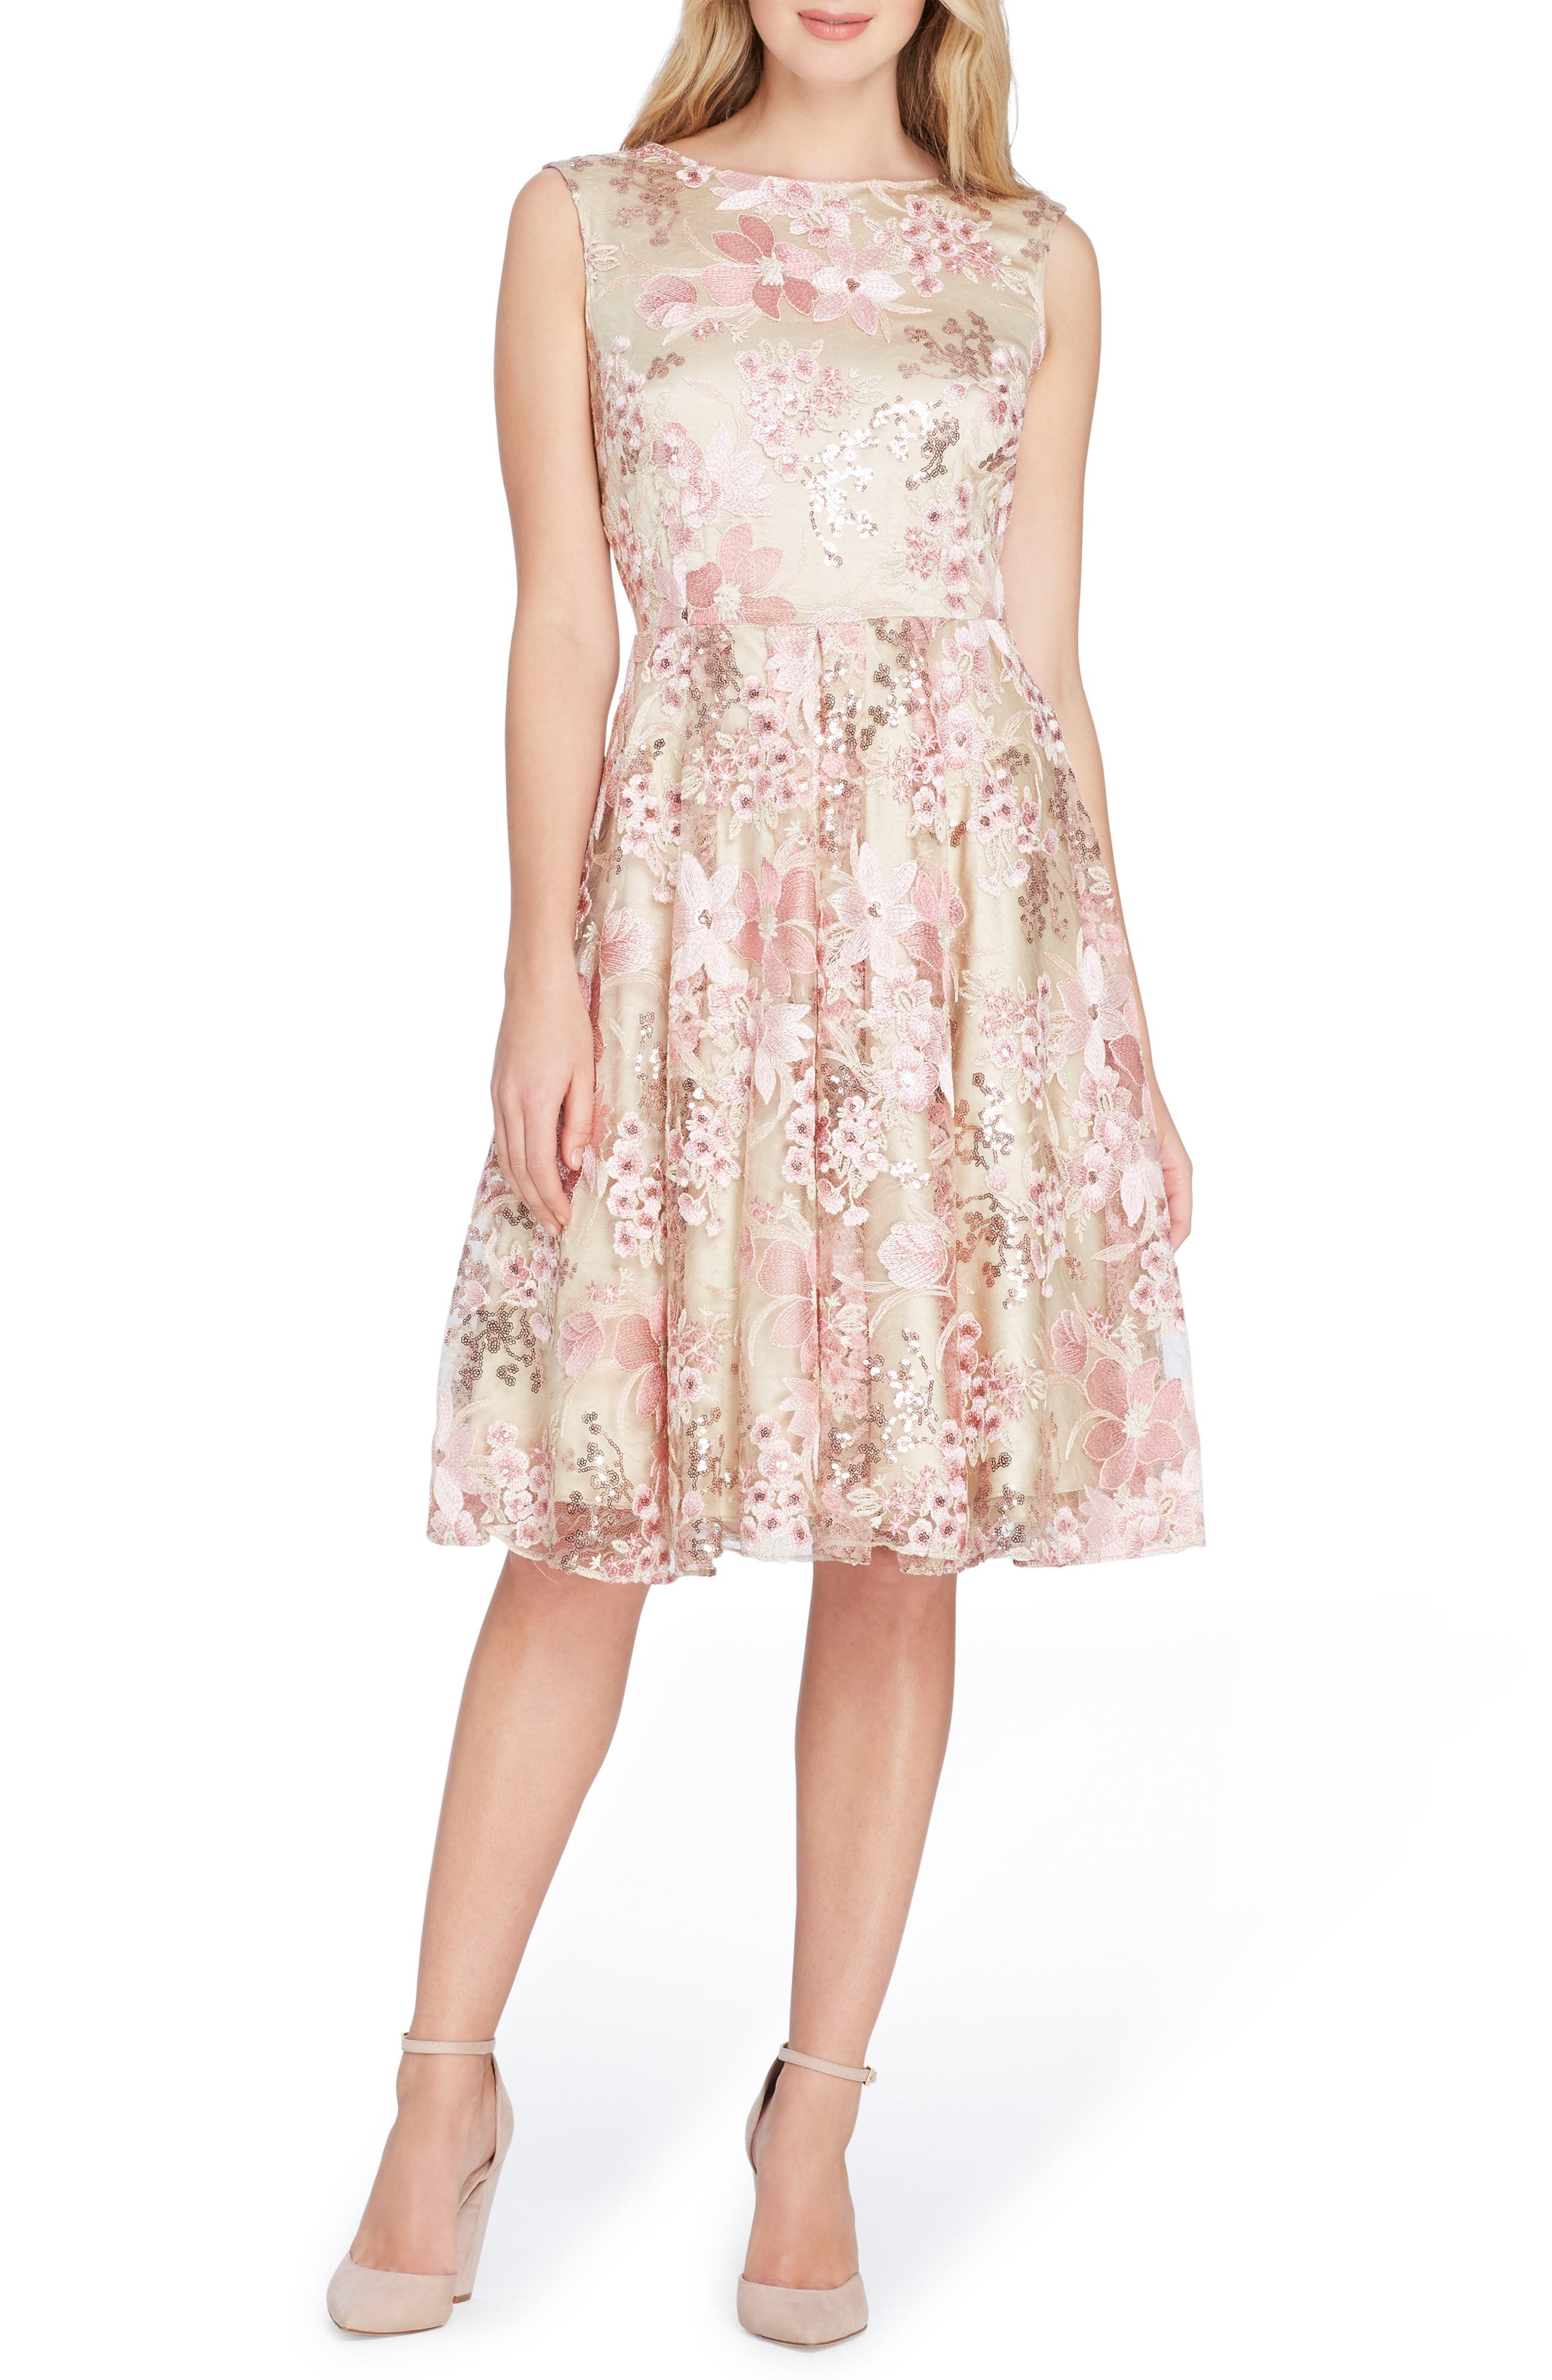 Sleeveless Embroidery Fit & Flare Dress,                         Main,                         color, Nude/ Tea Rose/ Blush